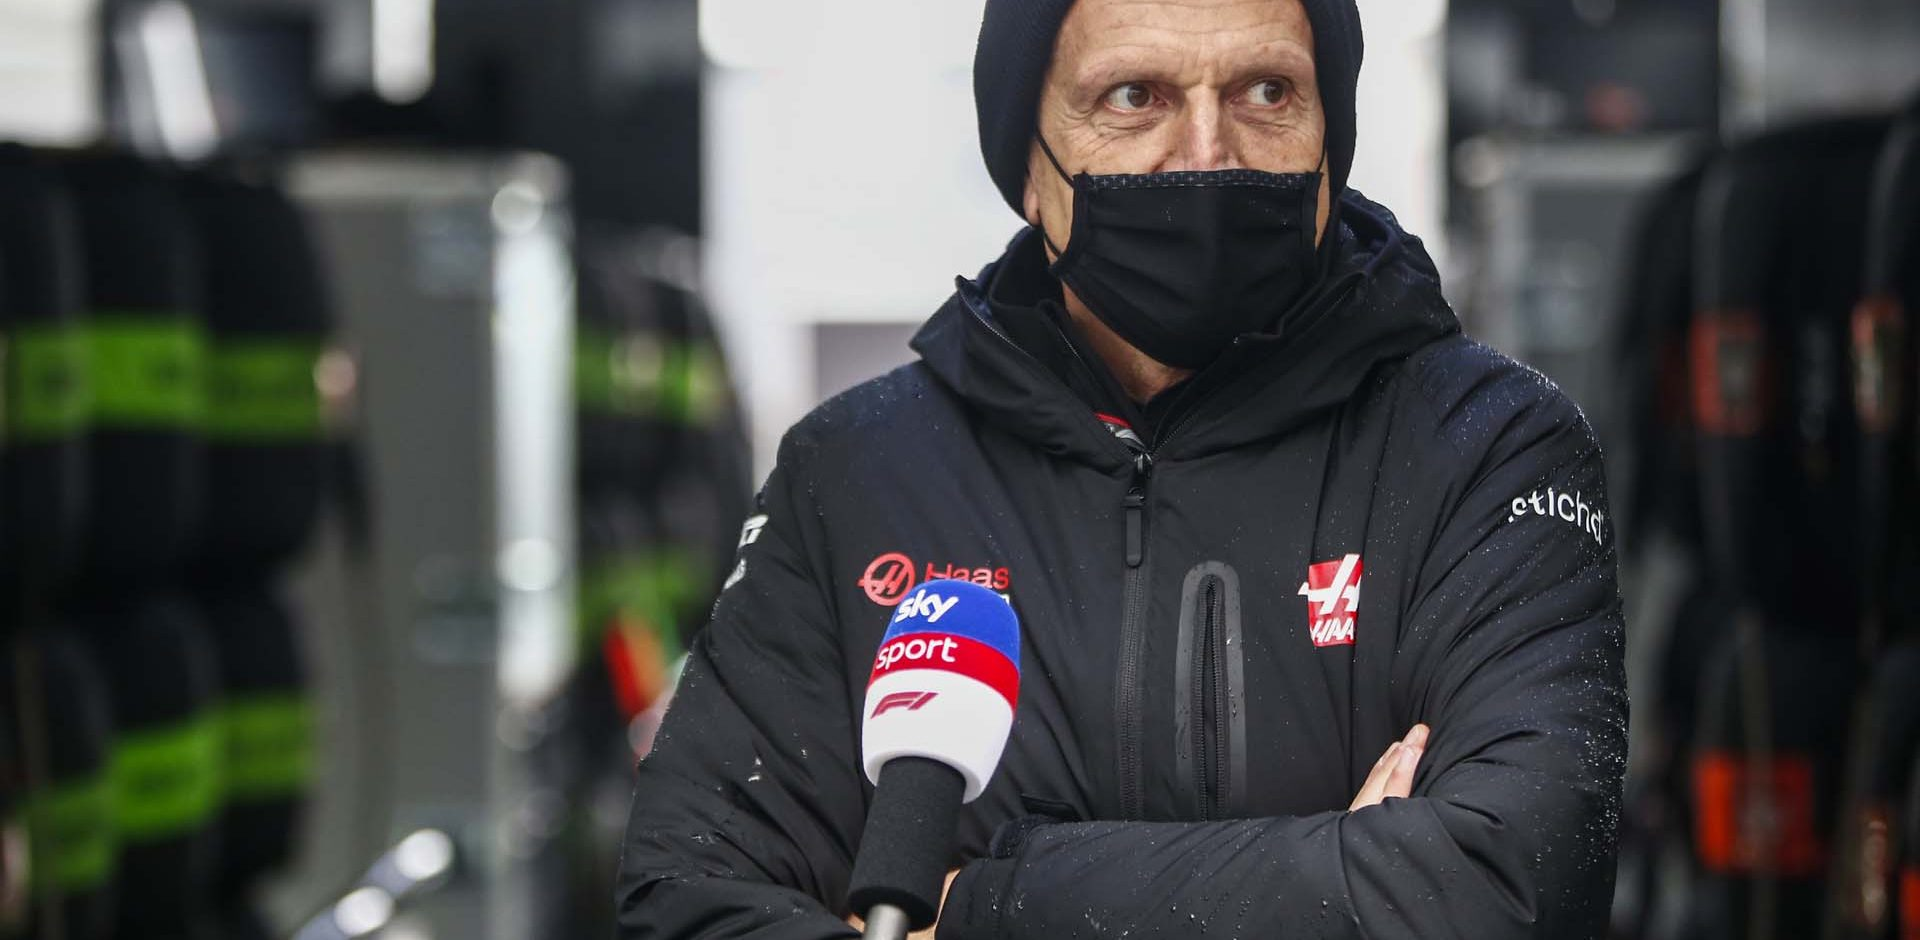 N√ľRBURGRING, GERMANY - OCTOBER 09: Guenther Steiner, Team Principal, Haas F1, is interviewed for Sky Sports F1 during the Eifel GP at N√ľrburgring on Friday October 09, 2020, Germany. (Photo by Andy Hone / LAT Images)